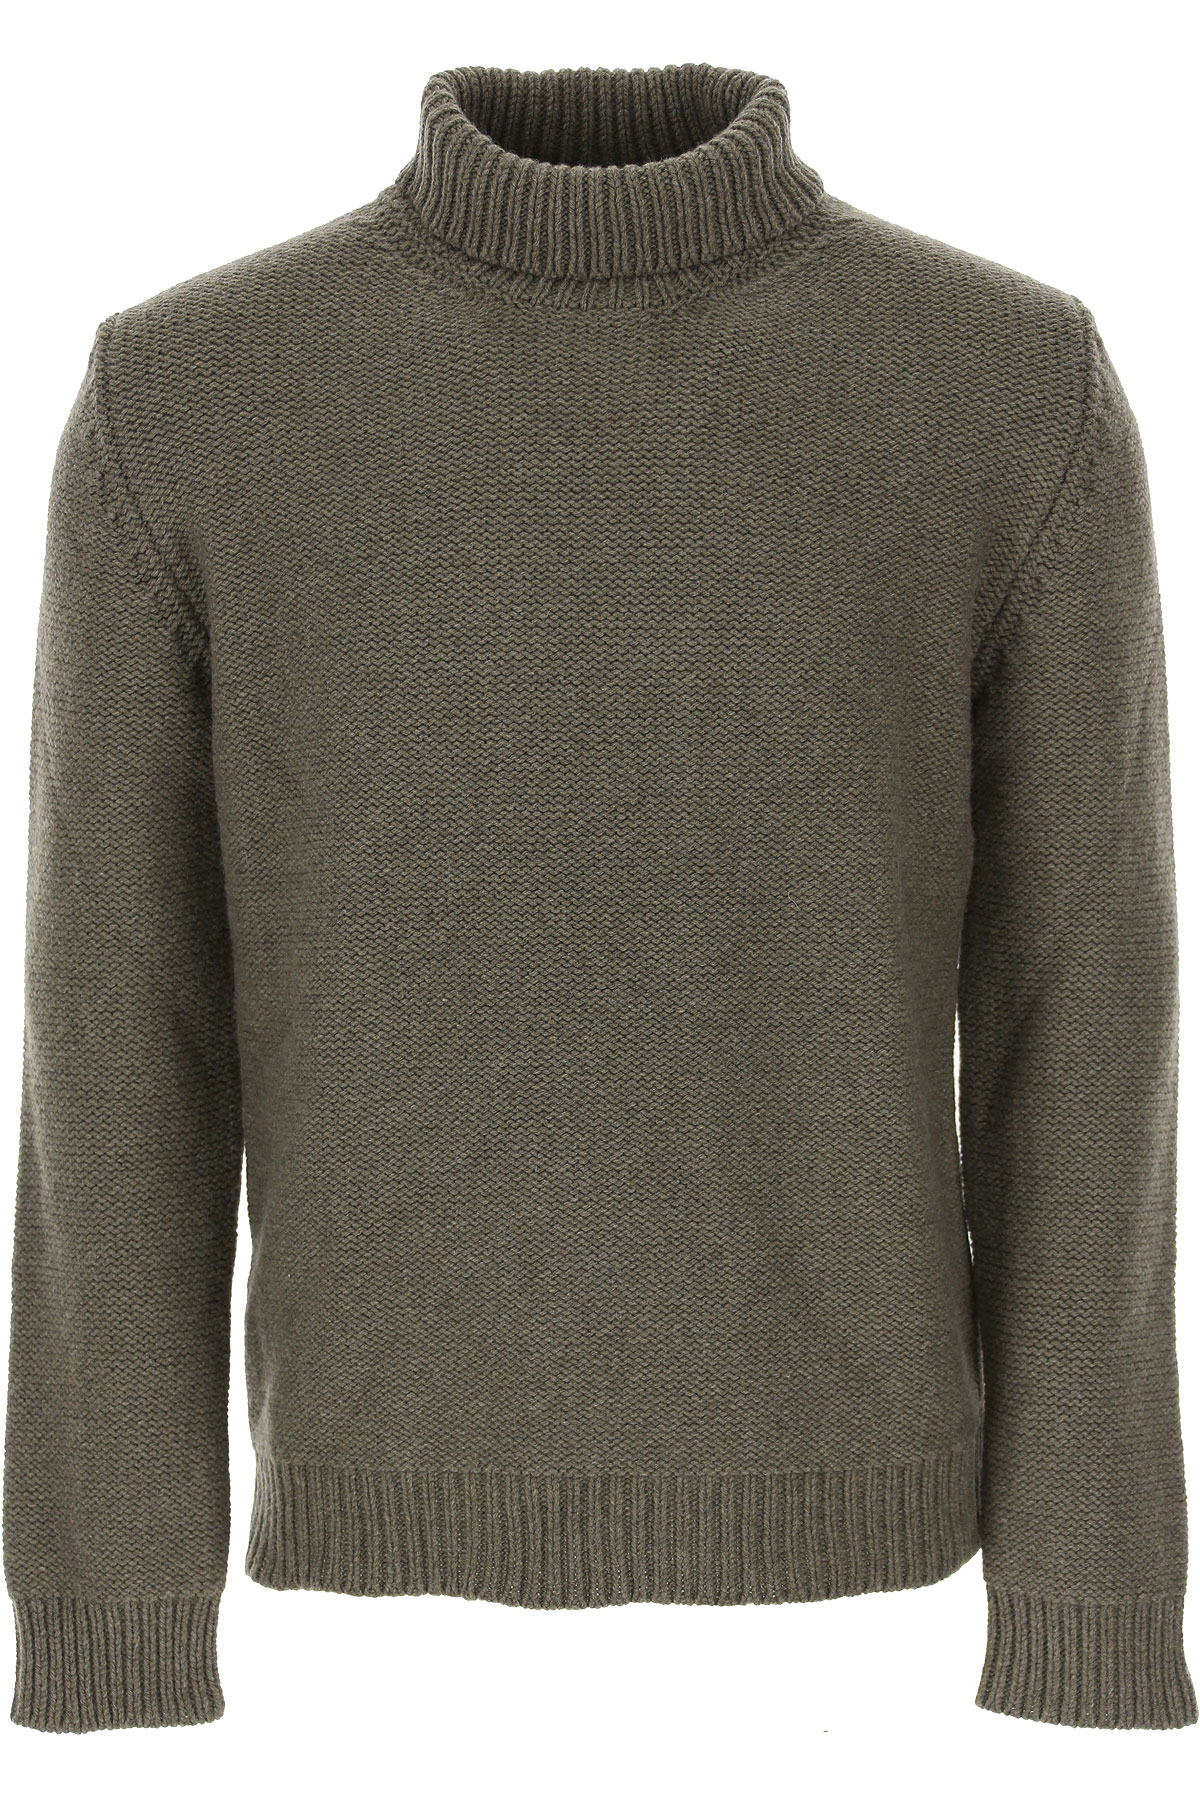 The Gigi Sweater for Men Jumper On Sale, Loden Green, Wool, 2019, L M S